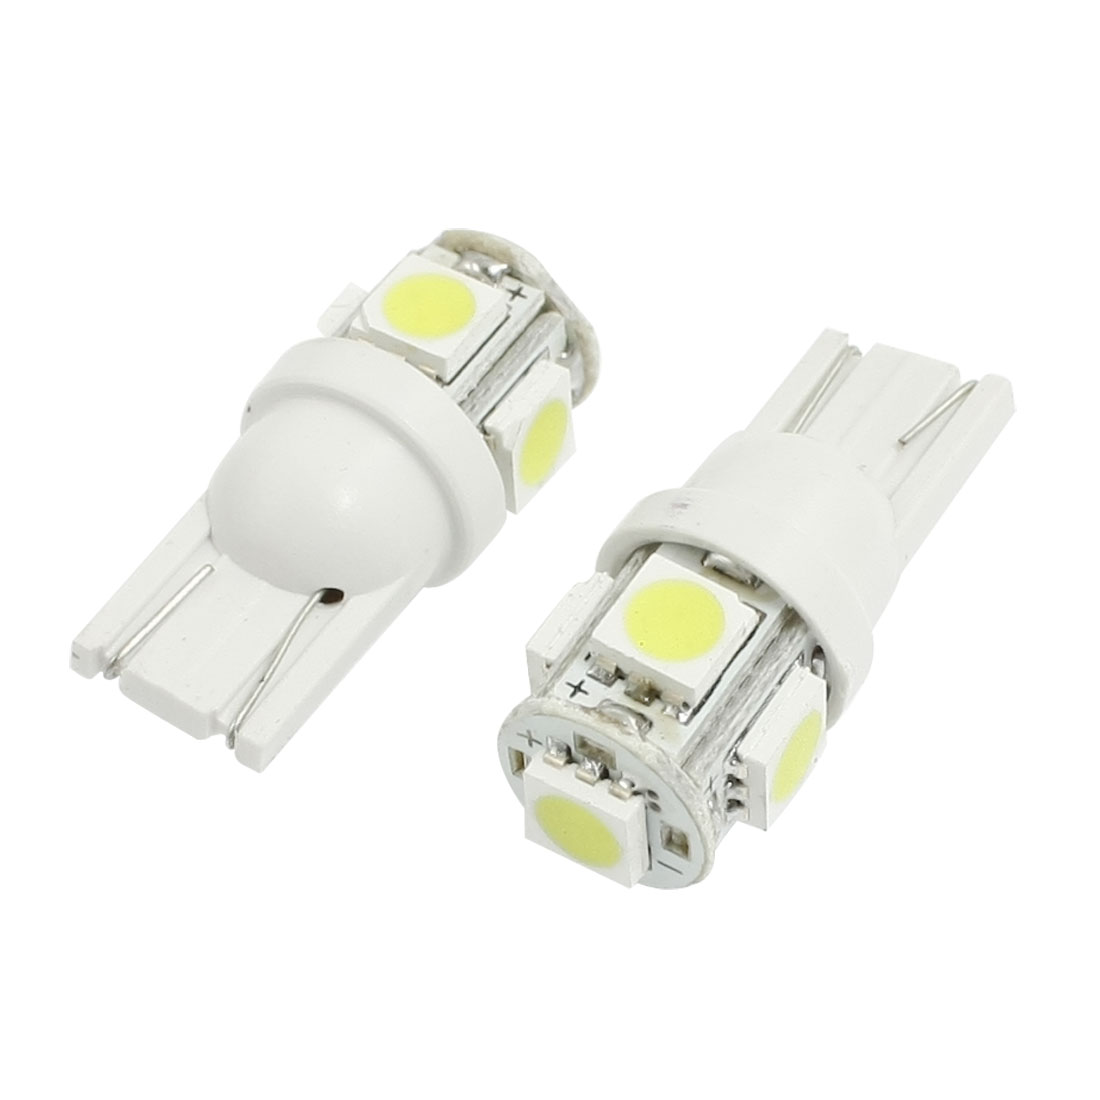 2 Pcs T10 W5W White 5 5050 SMD LED Car Side Wedge Turning light Lamp Bulb